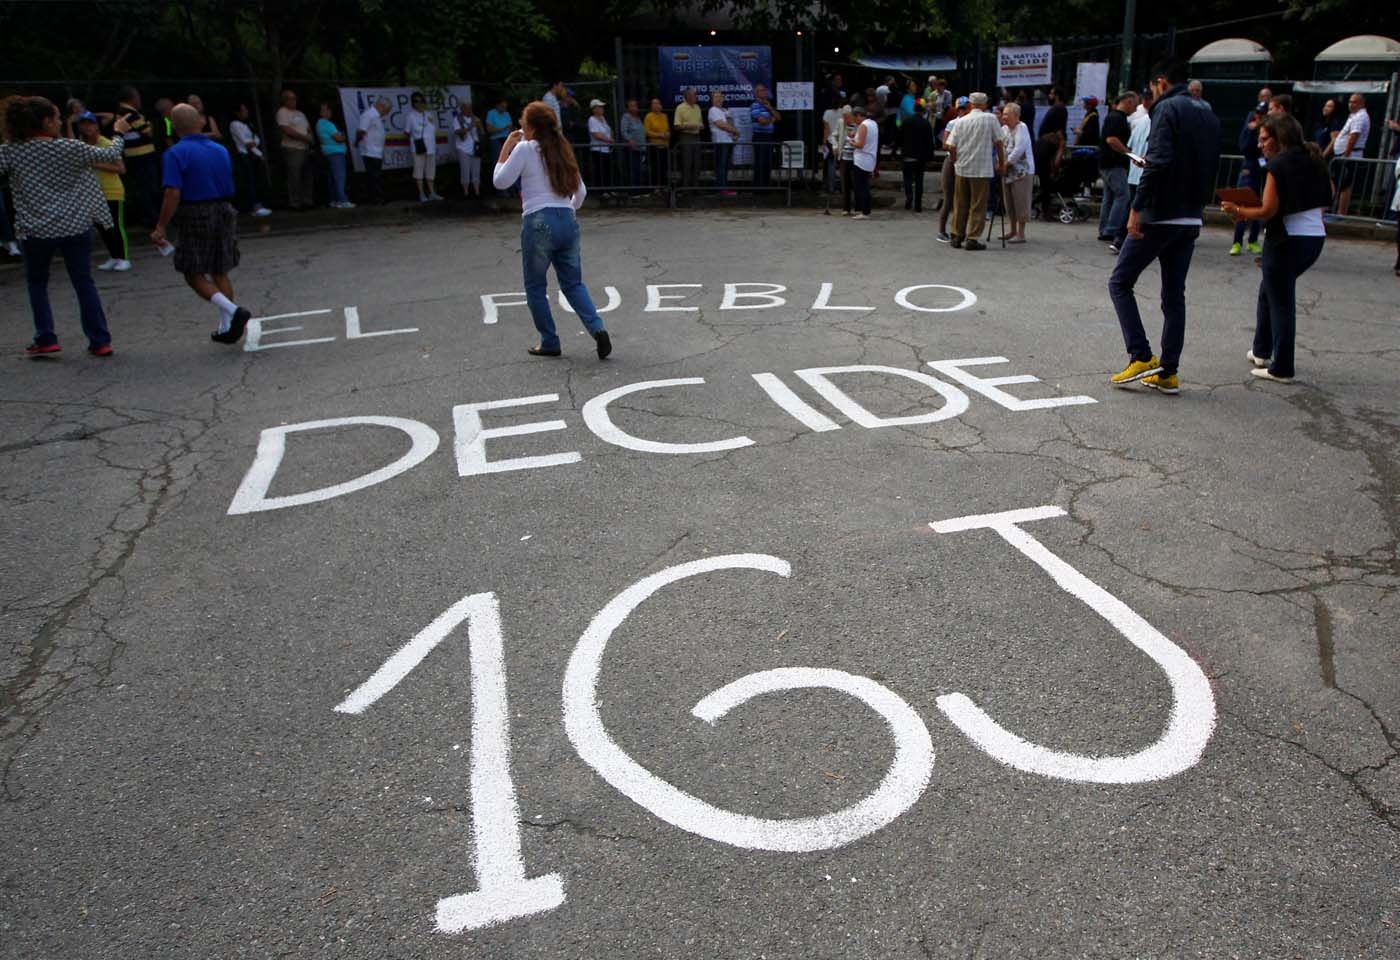 "People gather at a polling station during an unofficial plebiscite against Venezuela's President Nicolas Maduro's government and his plan to rewrite the constitution, in Caracas, Venezuela July 16, 2017. The writing on the pavement reads: ""The people decide 16J(uly)."" REUTERS/Christian Veron"